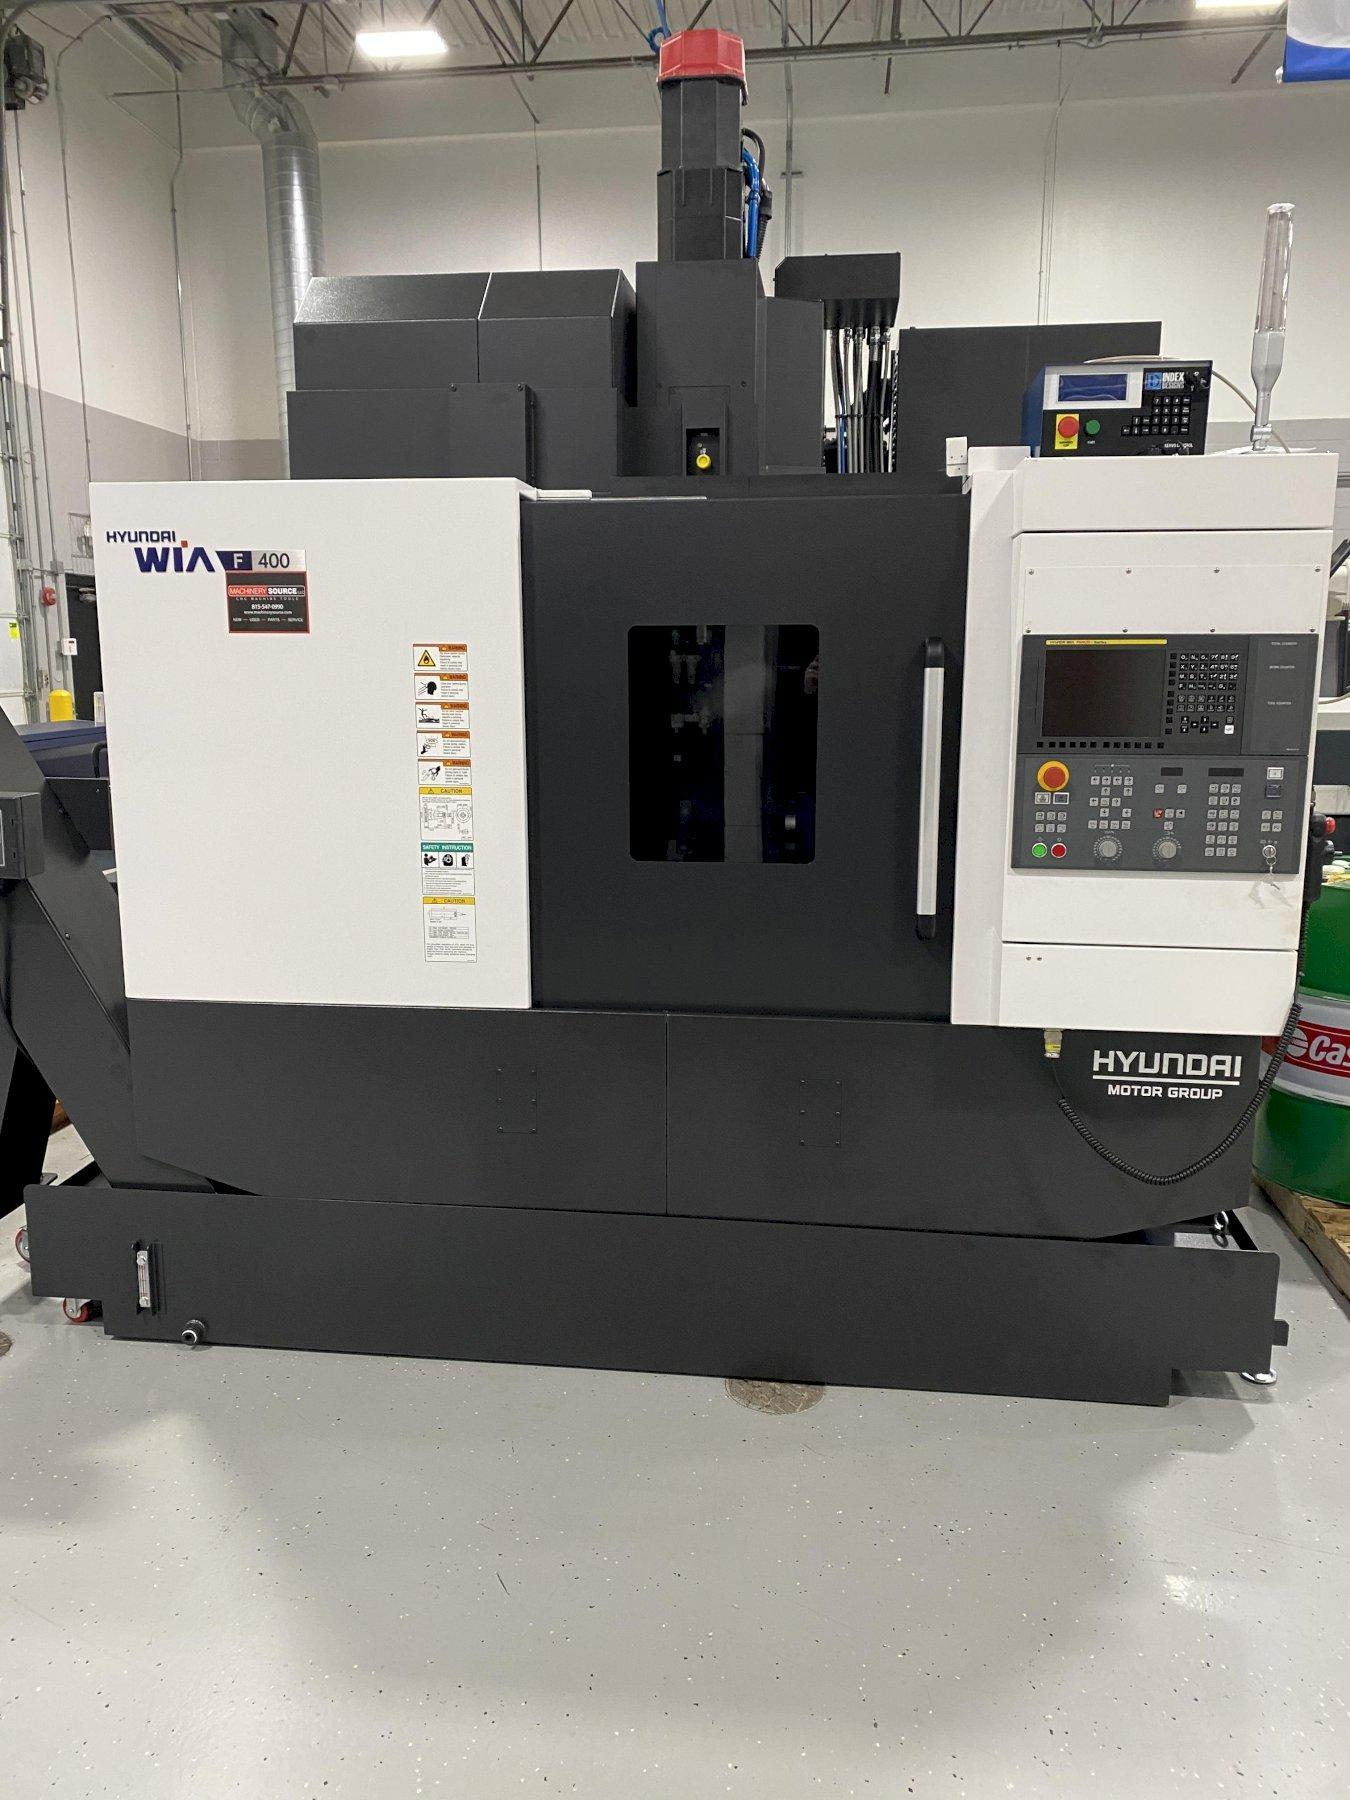 2019 HYUNDAI WIA F400 VERTICAL MACHINING CENTER